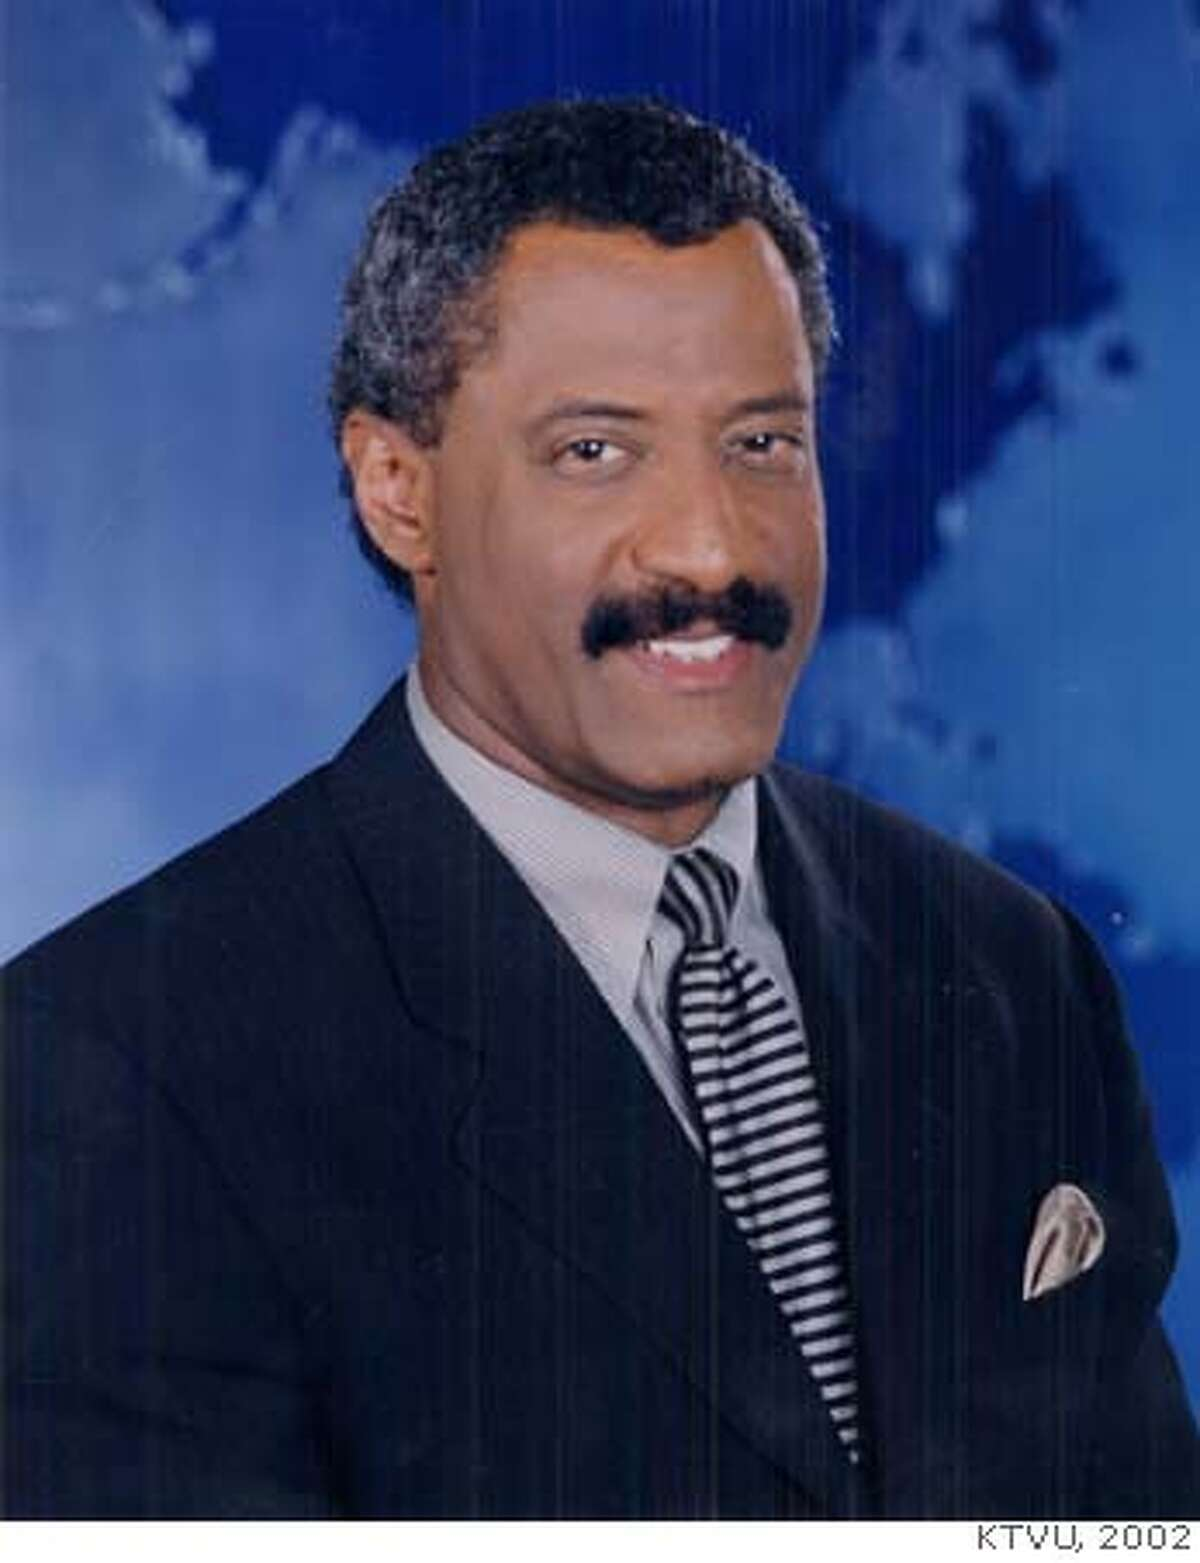 CARMAN23/C/21MAR00/DD/HO-Dennis Richmond, KTVU anchorman HANDOUT ALSO RAN: 05/27/2000 ALSO RAN 05/25/02 CAT